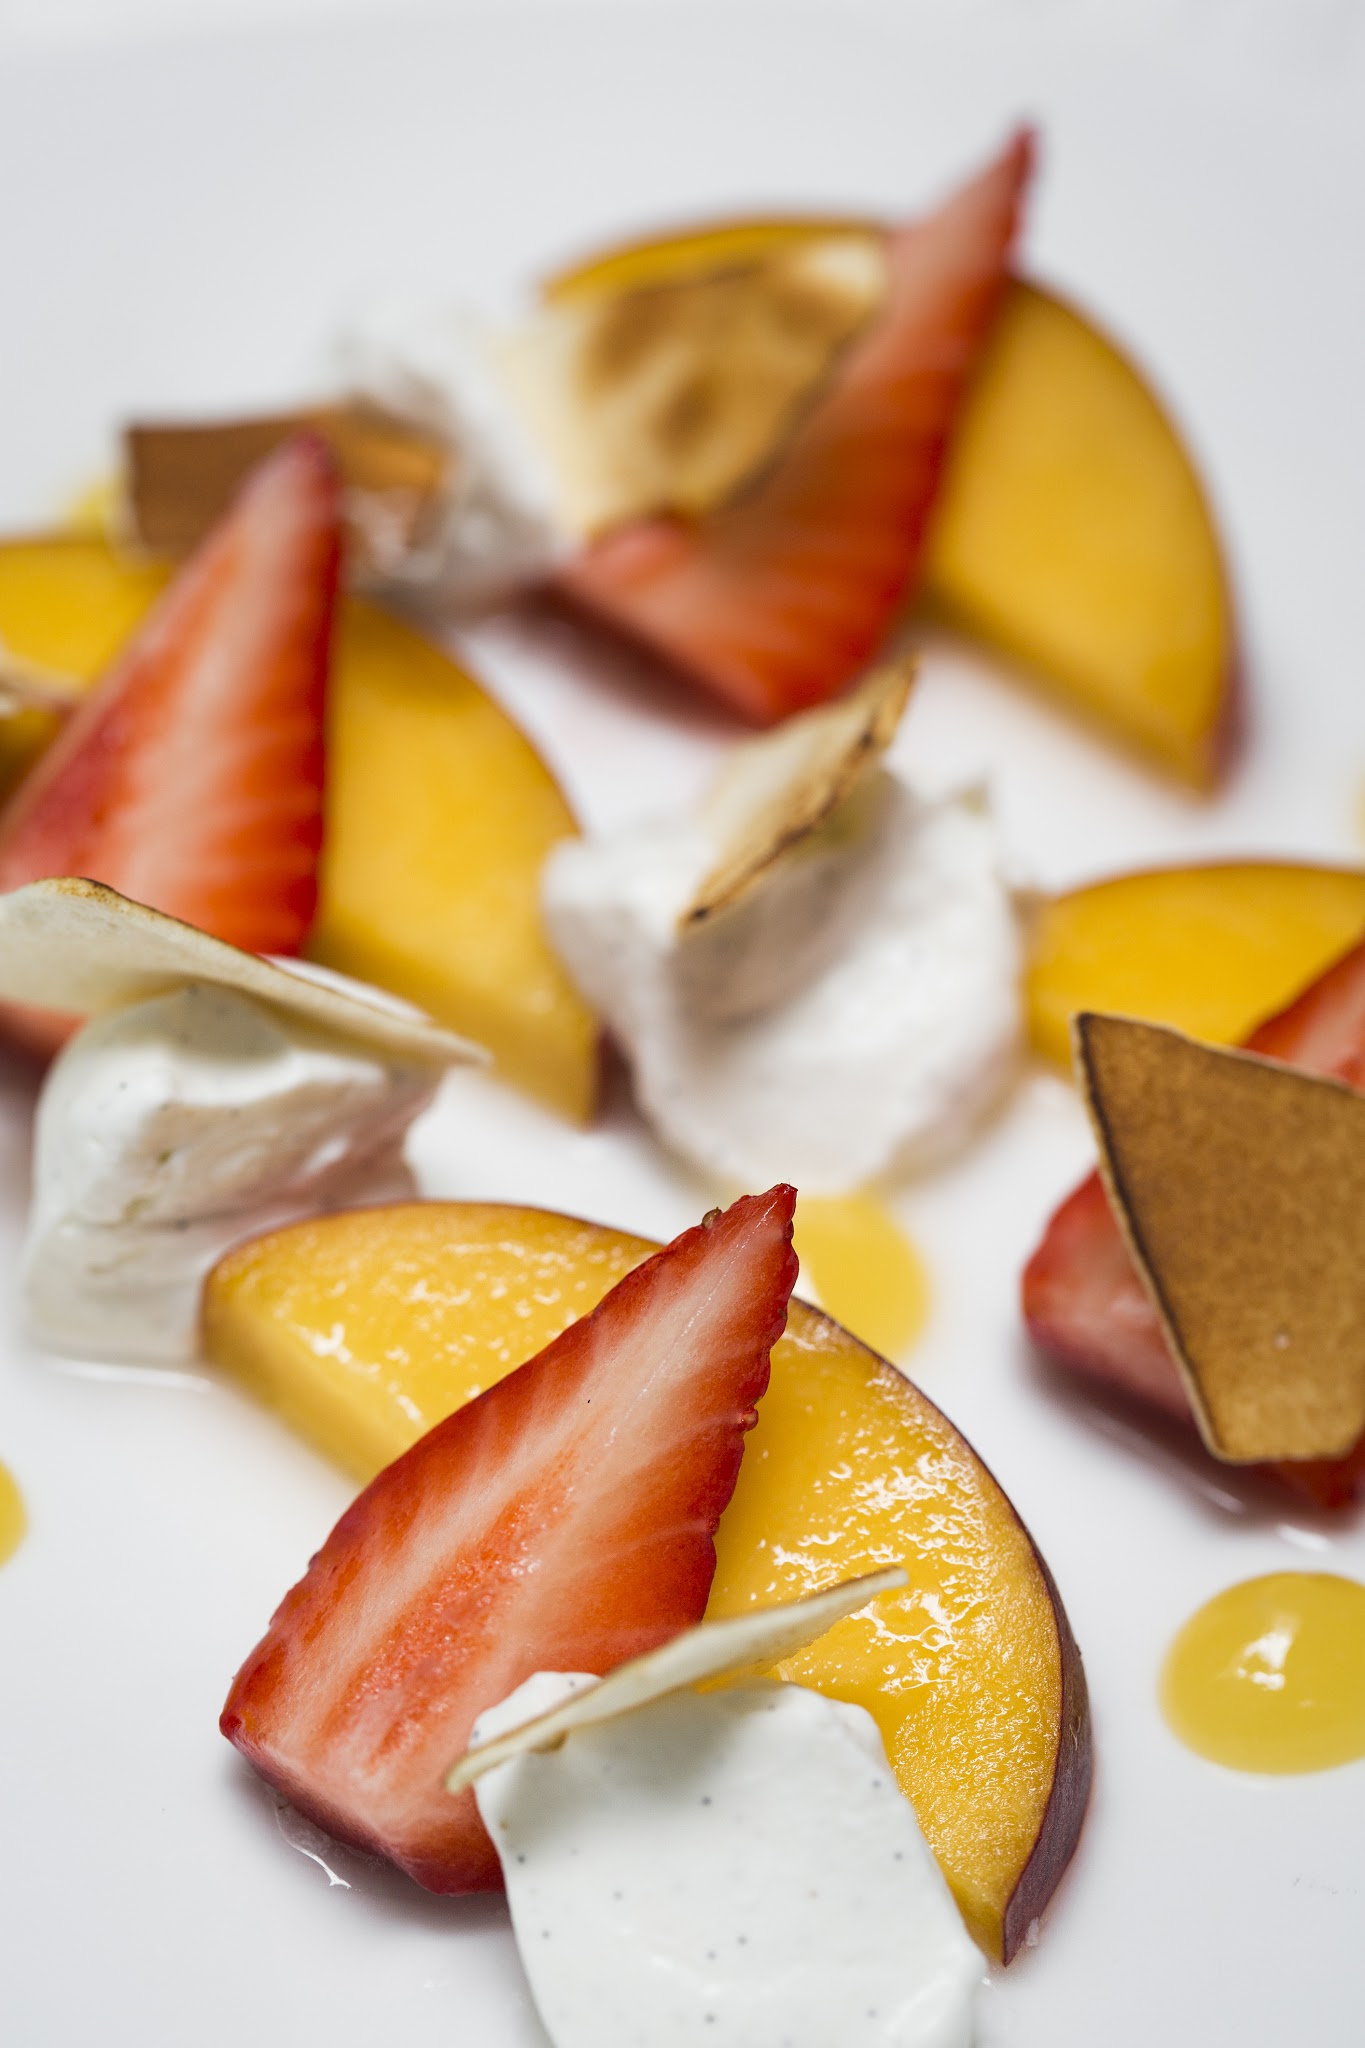 Arcane, Australian Day Menu, Poacked Peach, Strawberries, Meringue